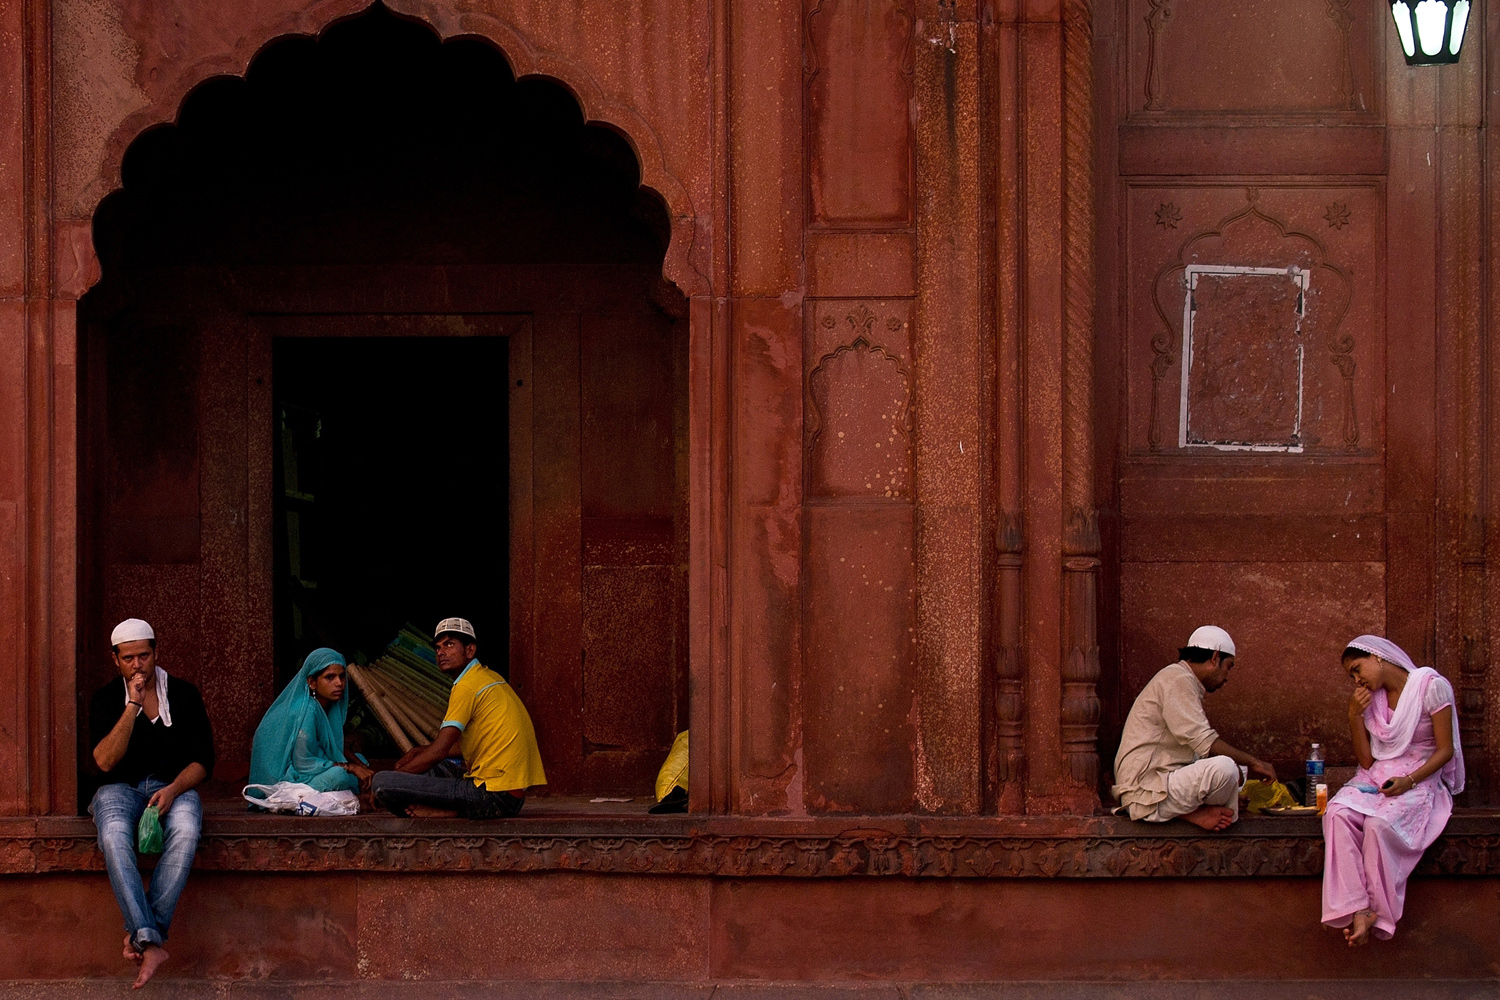 August 2, 2011. Indian Muslims break their fast at the Jama Masjid Mosque on the first day of the holy month of Ramadan in New Delhi.